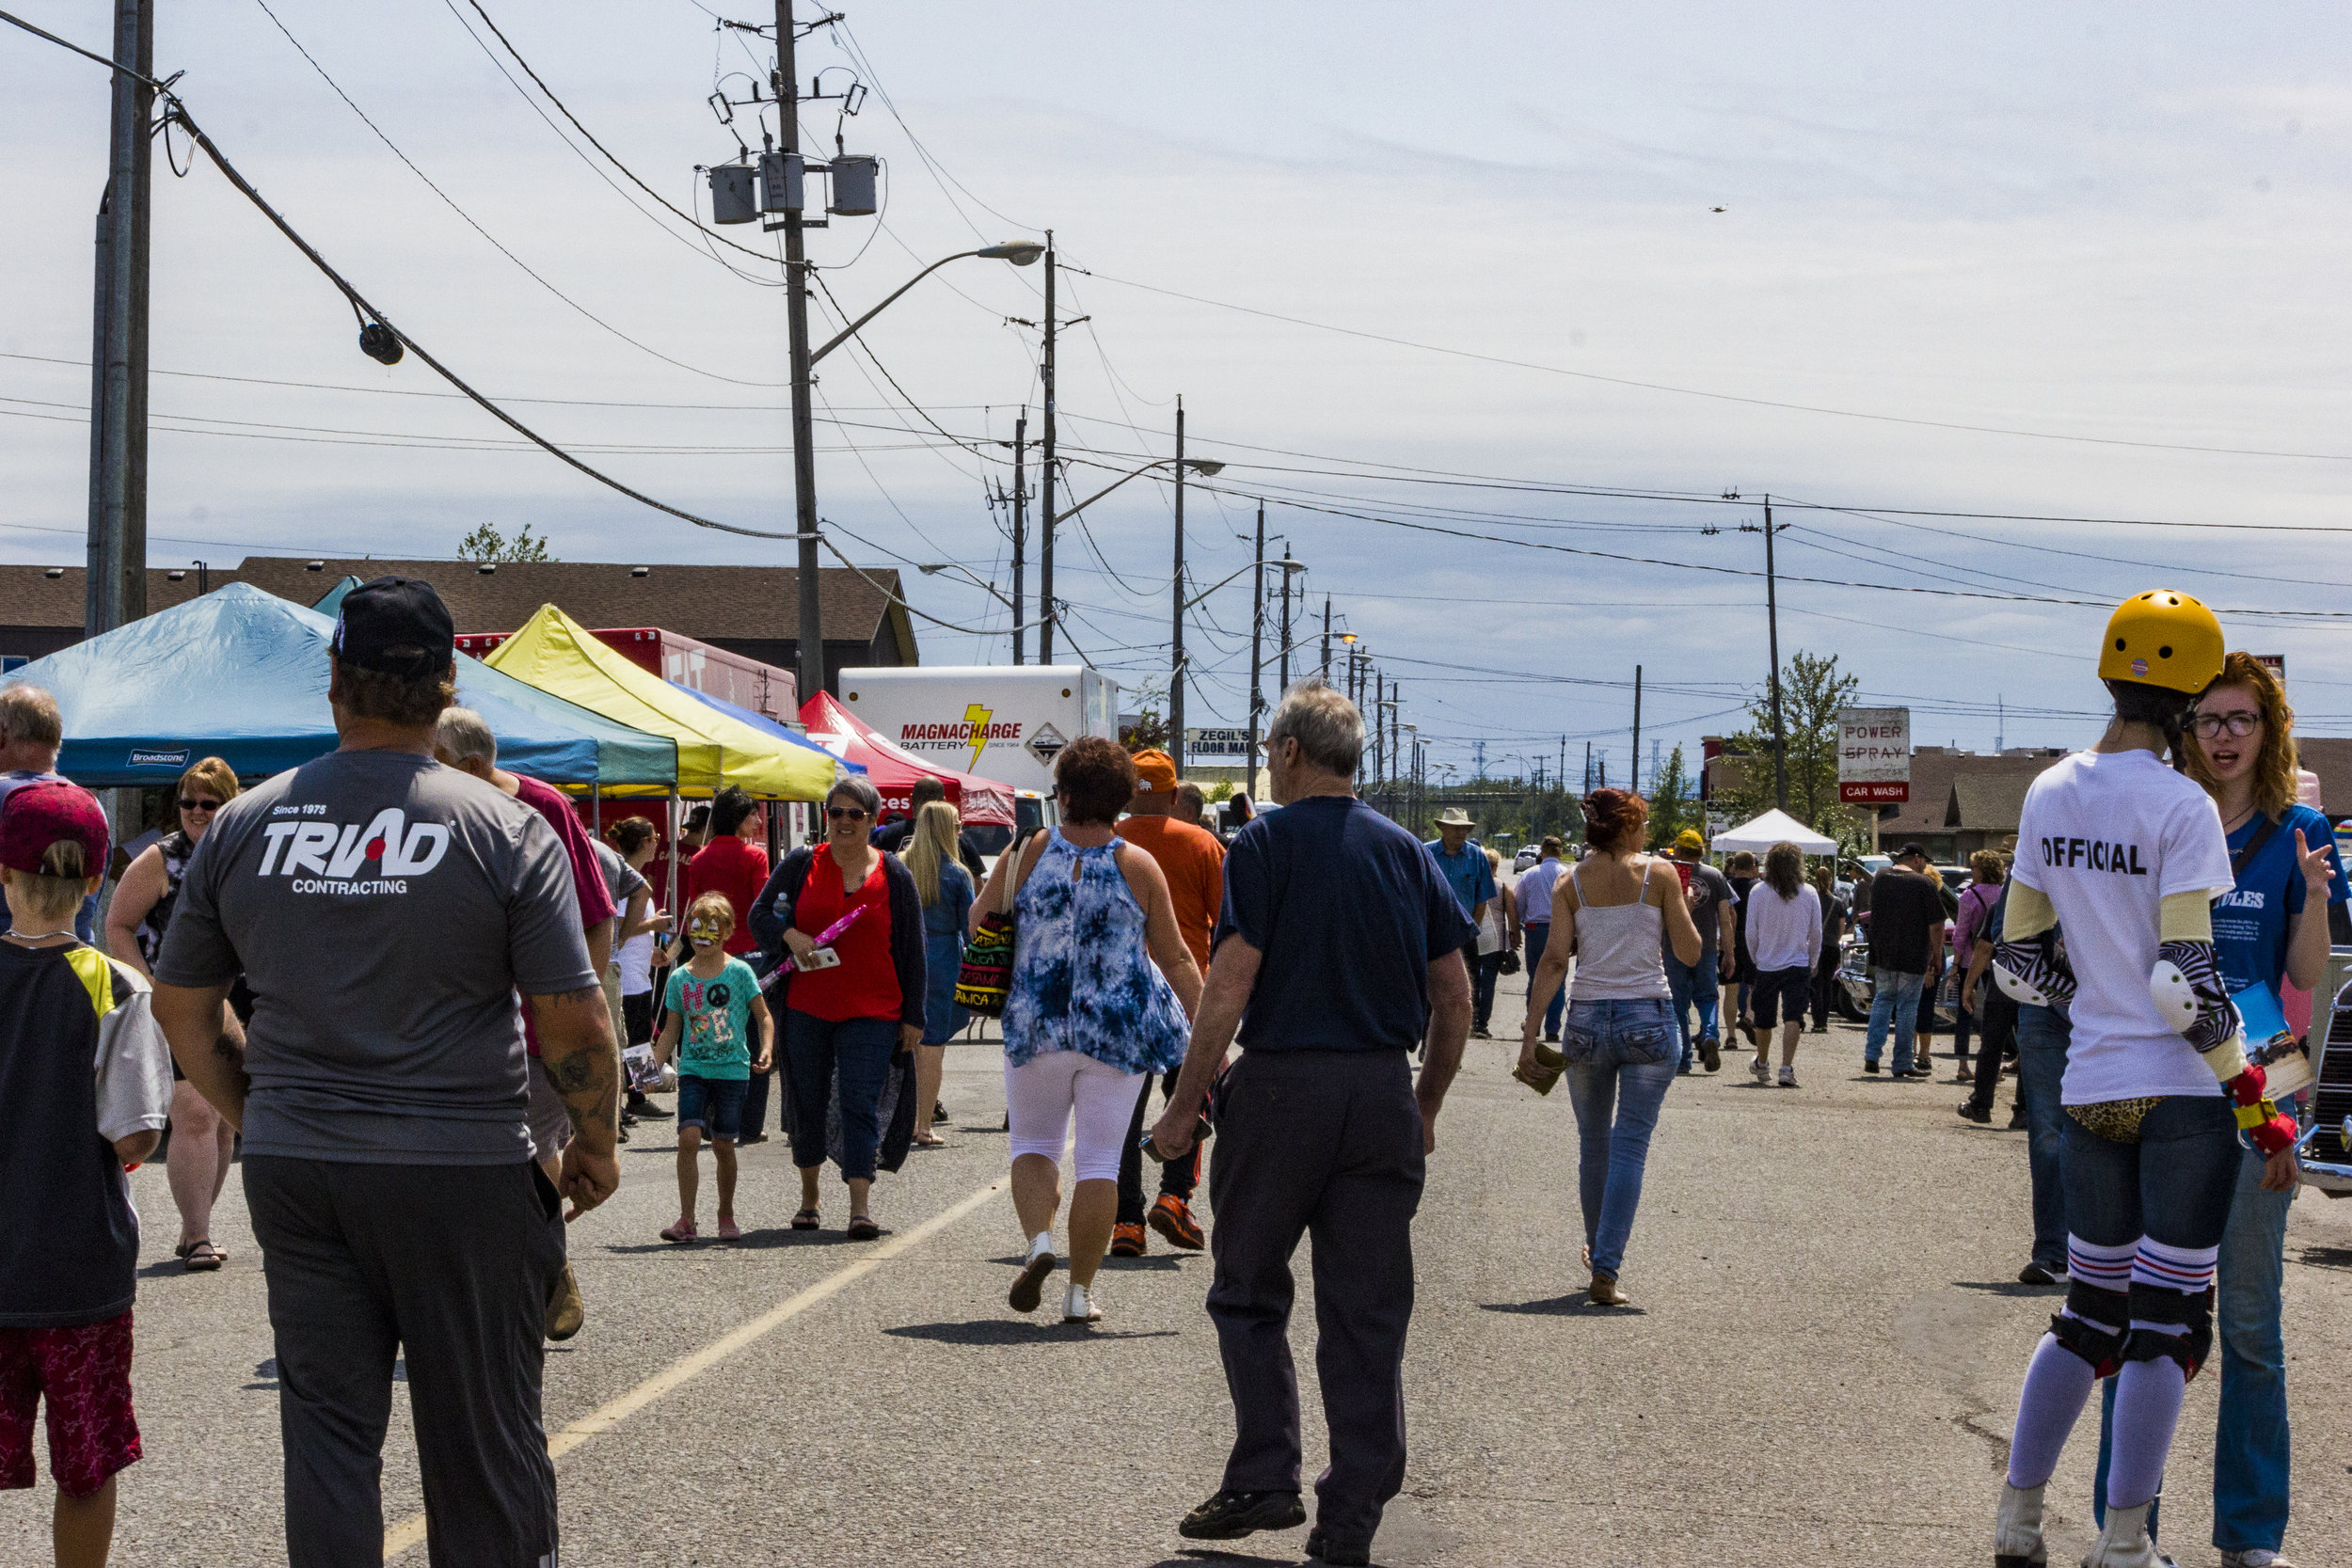 Crowds at Fat Guys 2017 Car Show